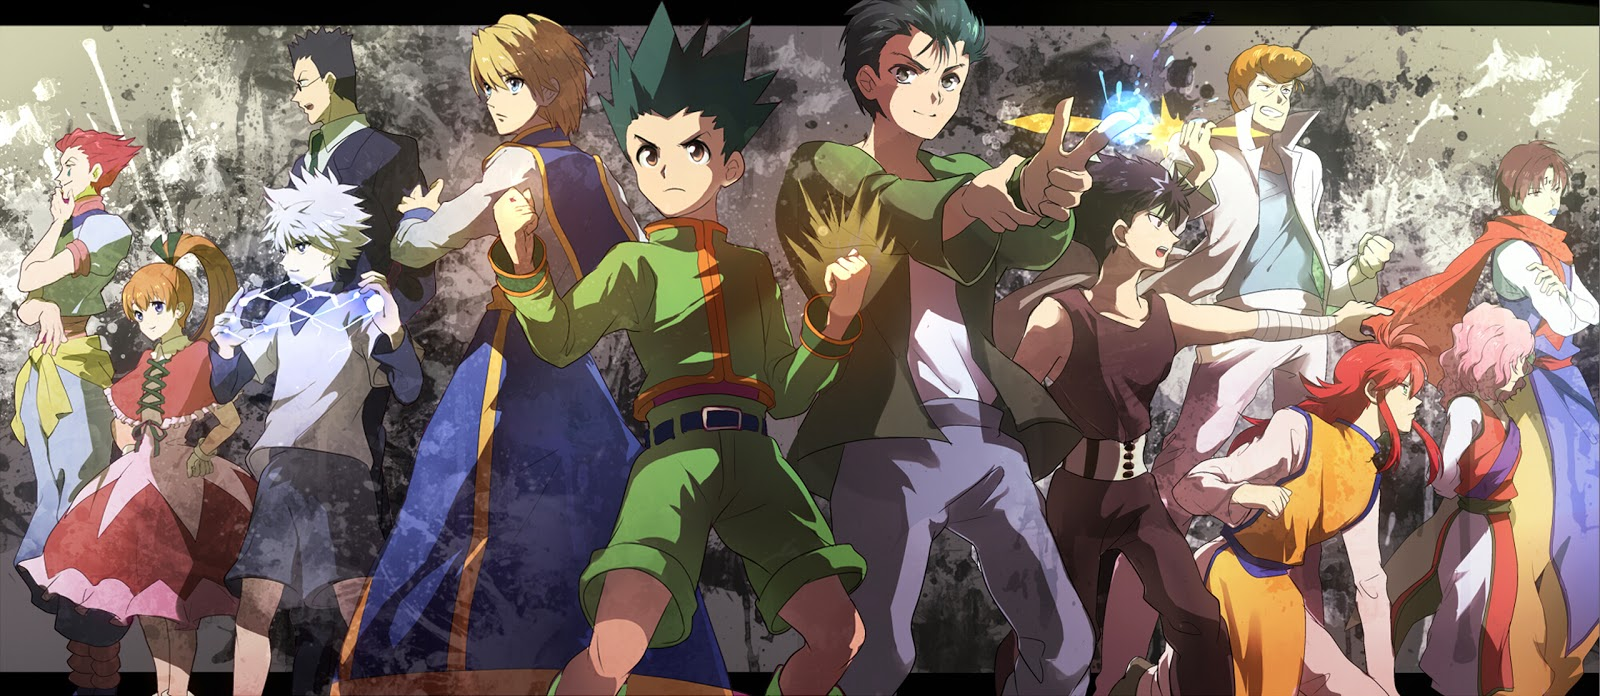 Free Download Hunter X Hunter Yu Yu Hakusho Anime Cross Over Hd